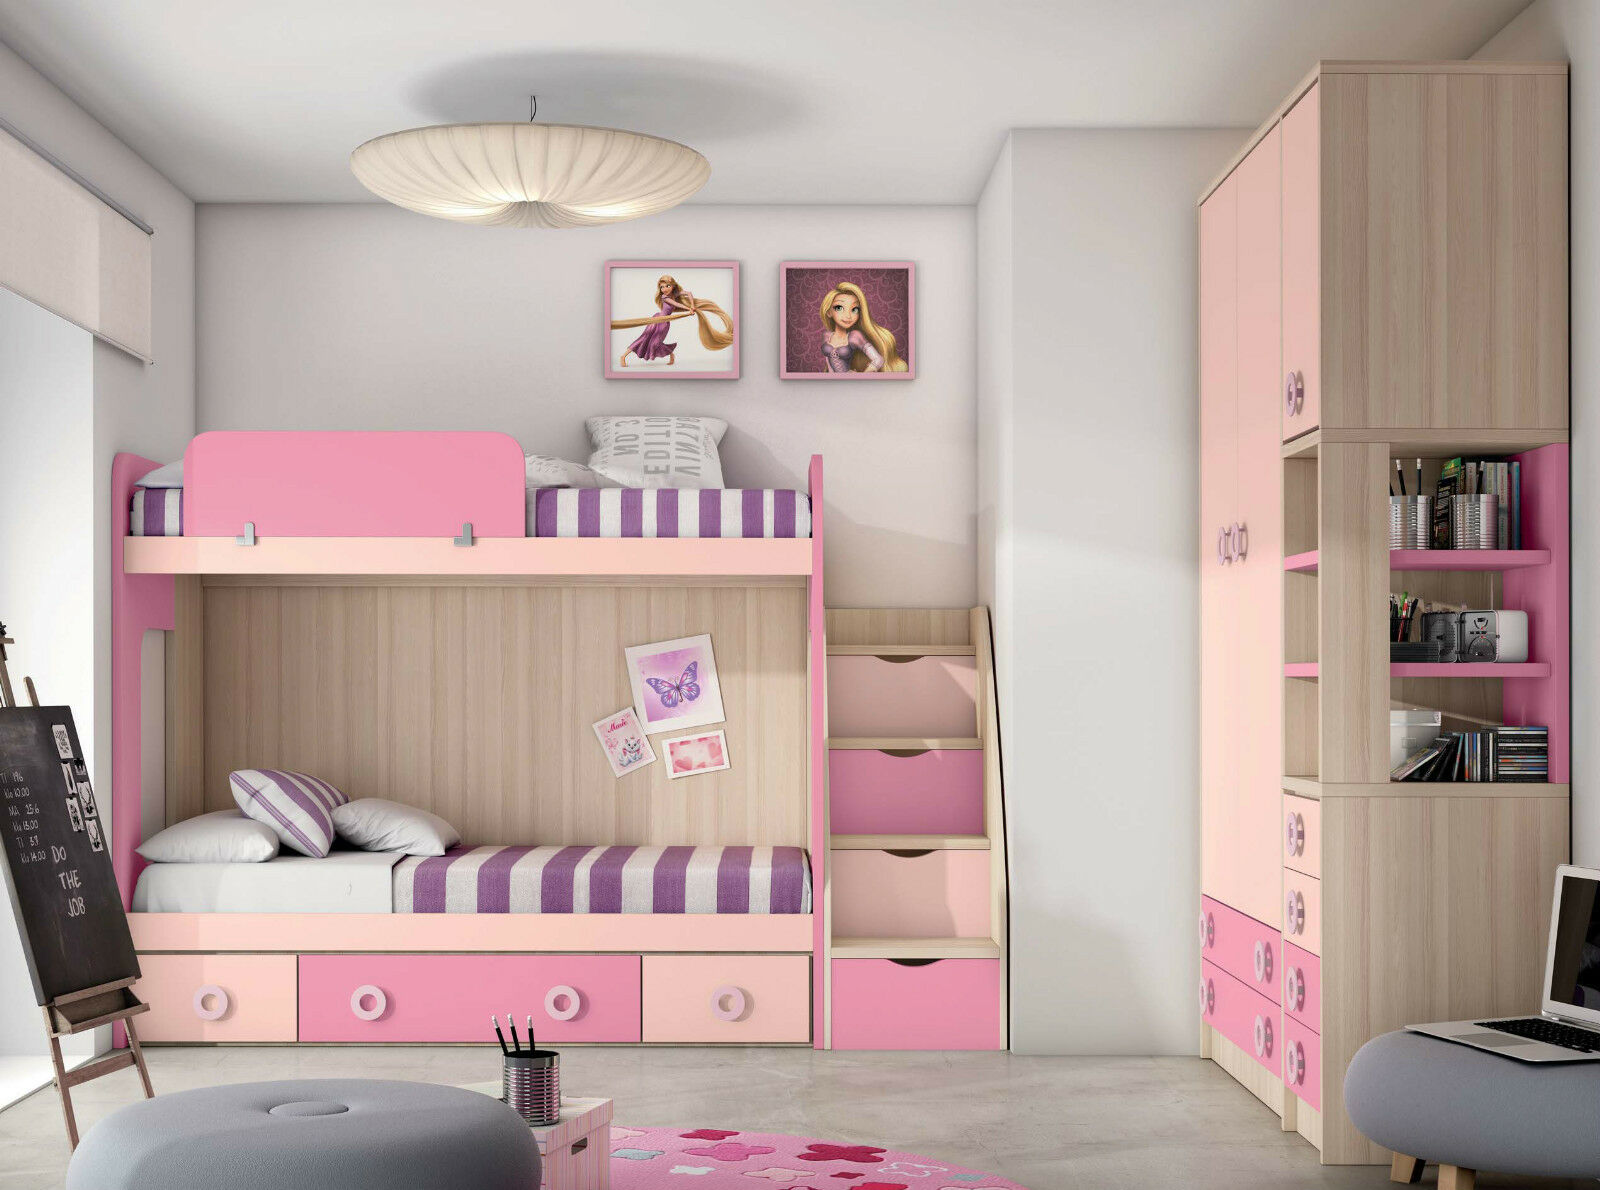 jugendzimmer komplett set mit etagenbett hochbettkombination kinderzimmer m bel eur. Black Bedroom Furniture Sets. Home Design Ideas